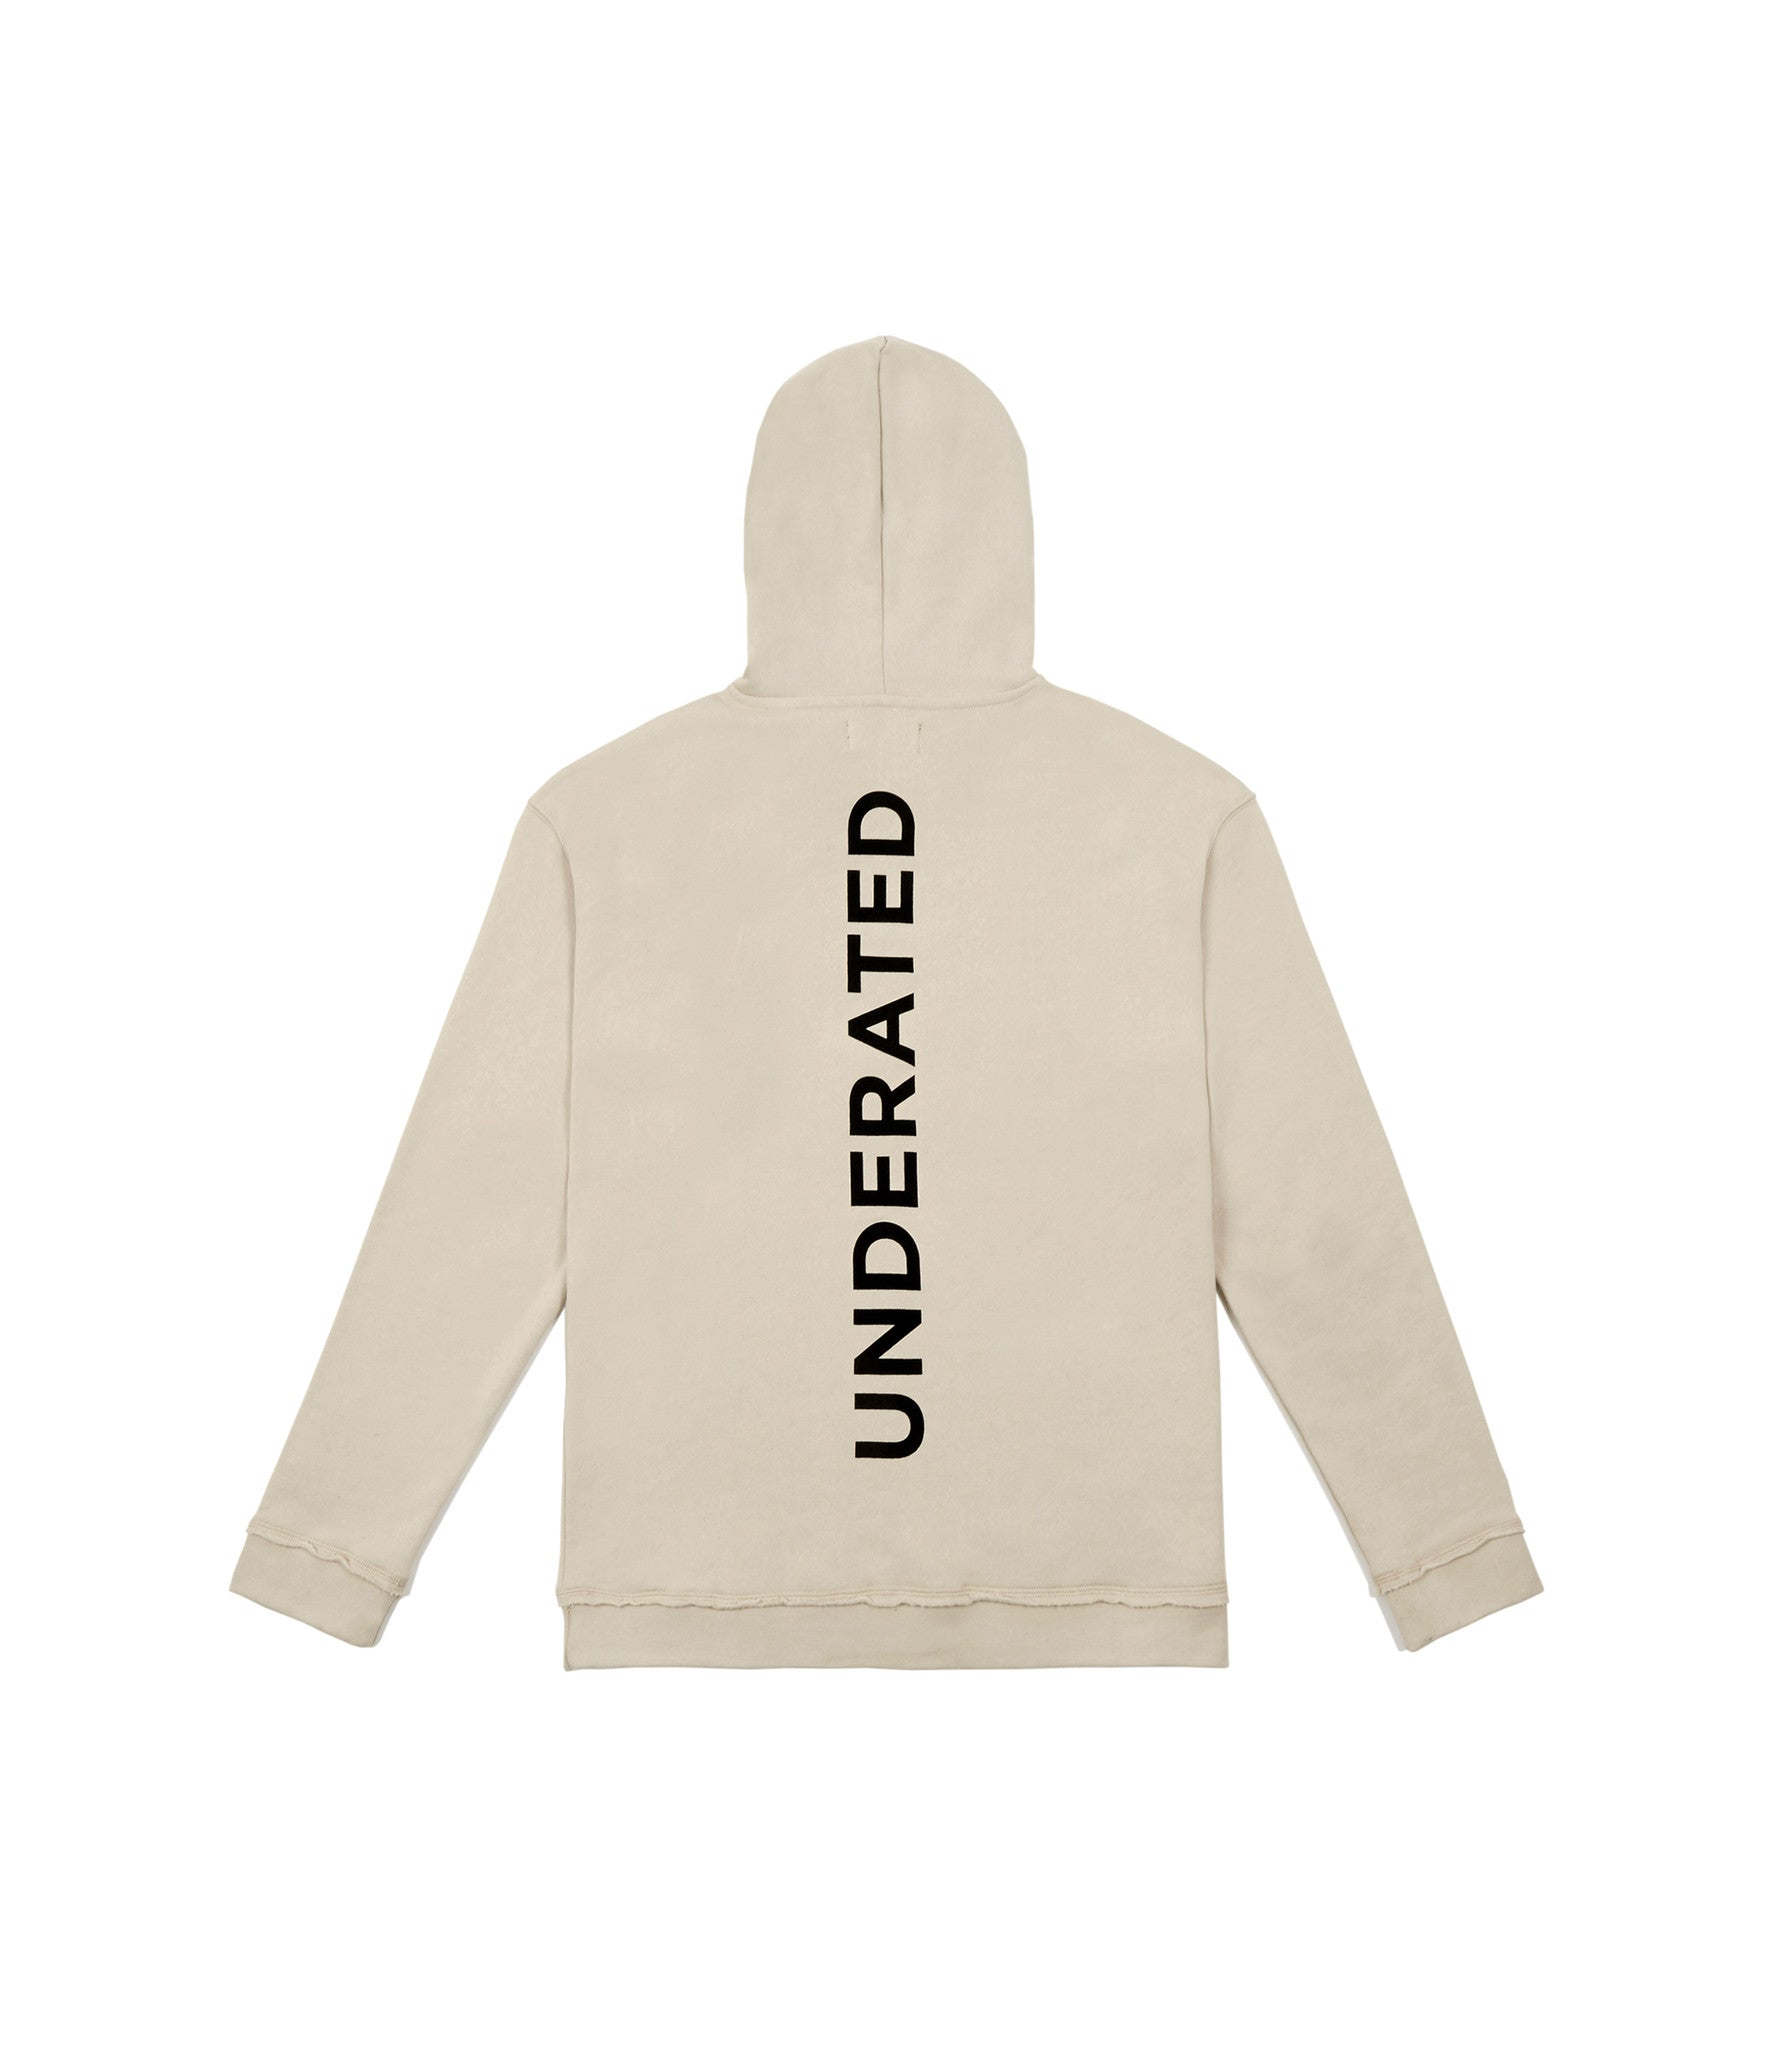 HD334 Printed Hoody - Nude - underated london - underatedco - 4